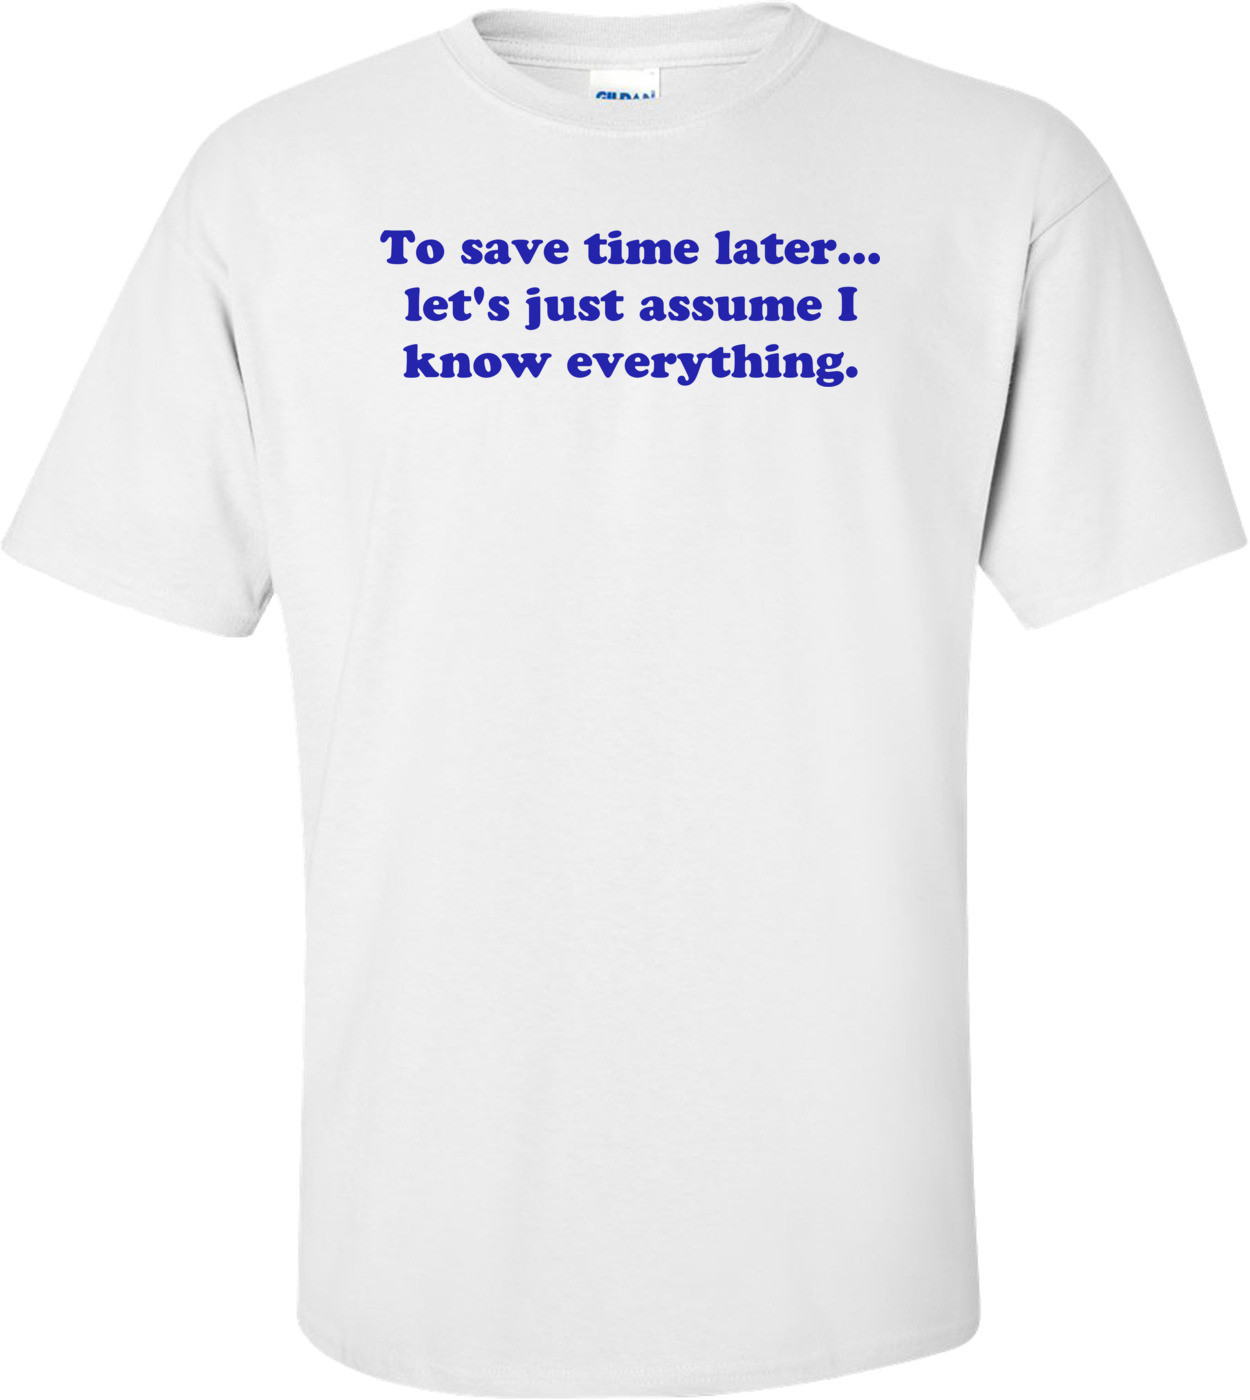 To save time later... let's just assume I know everything. Shirt